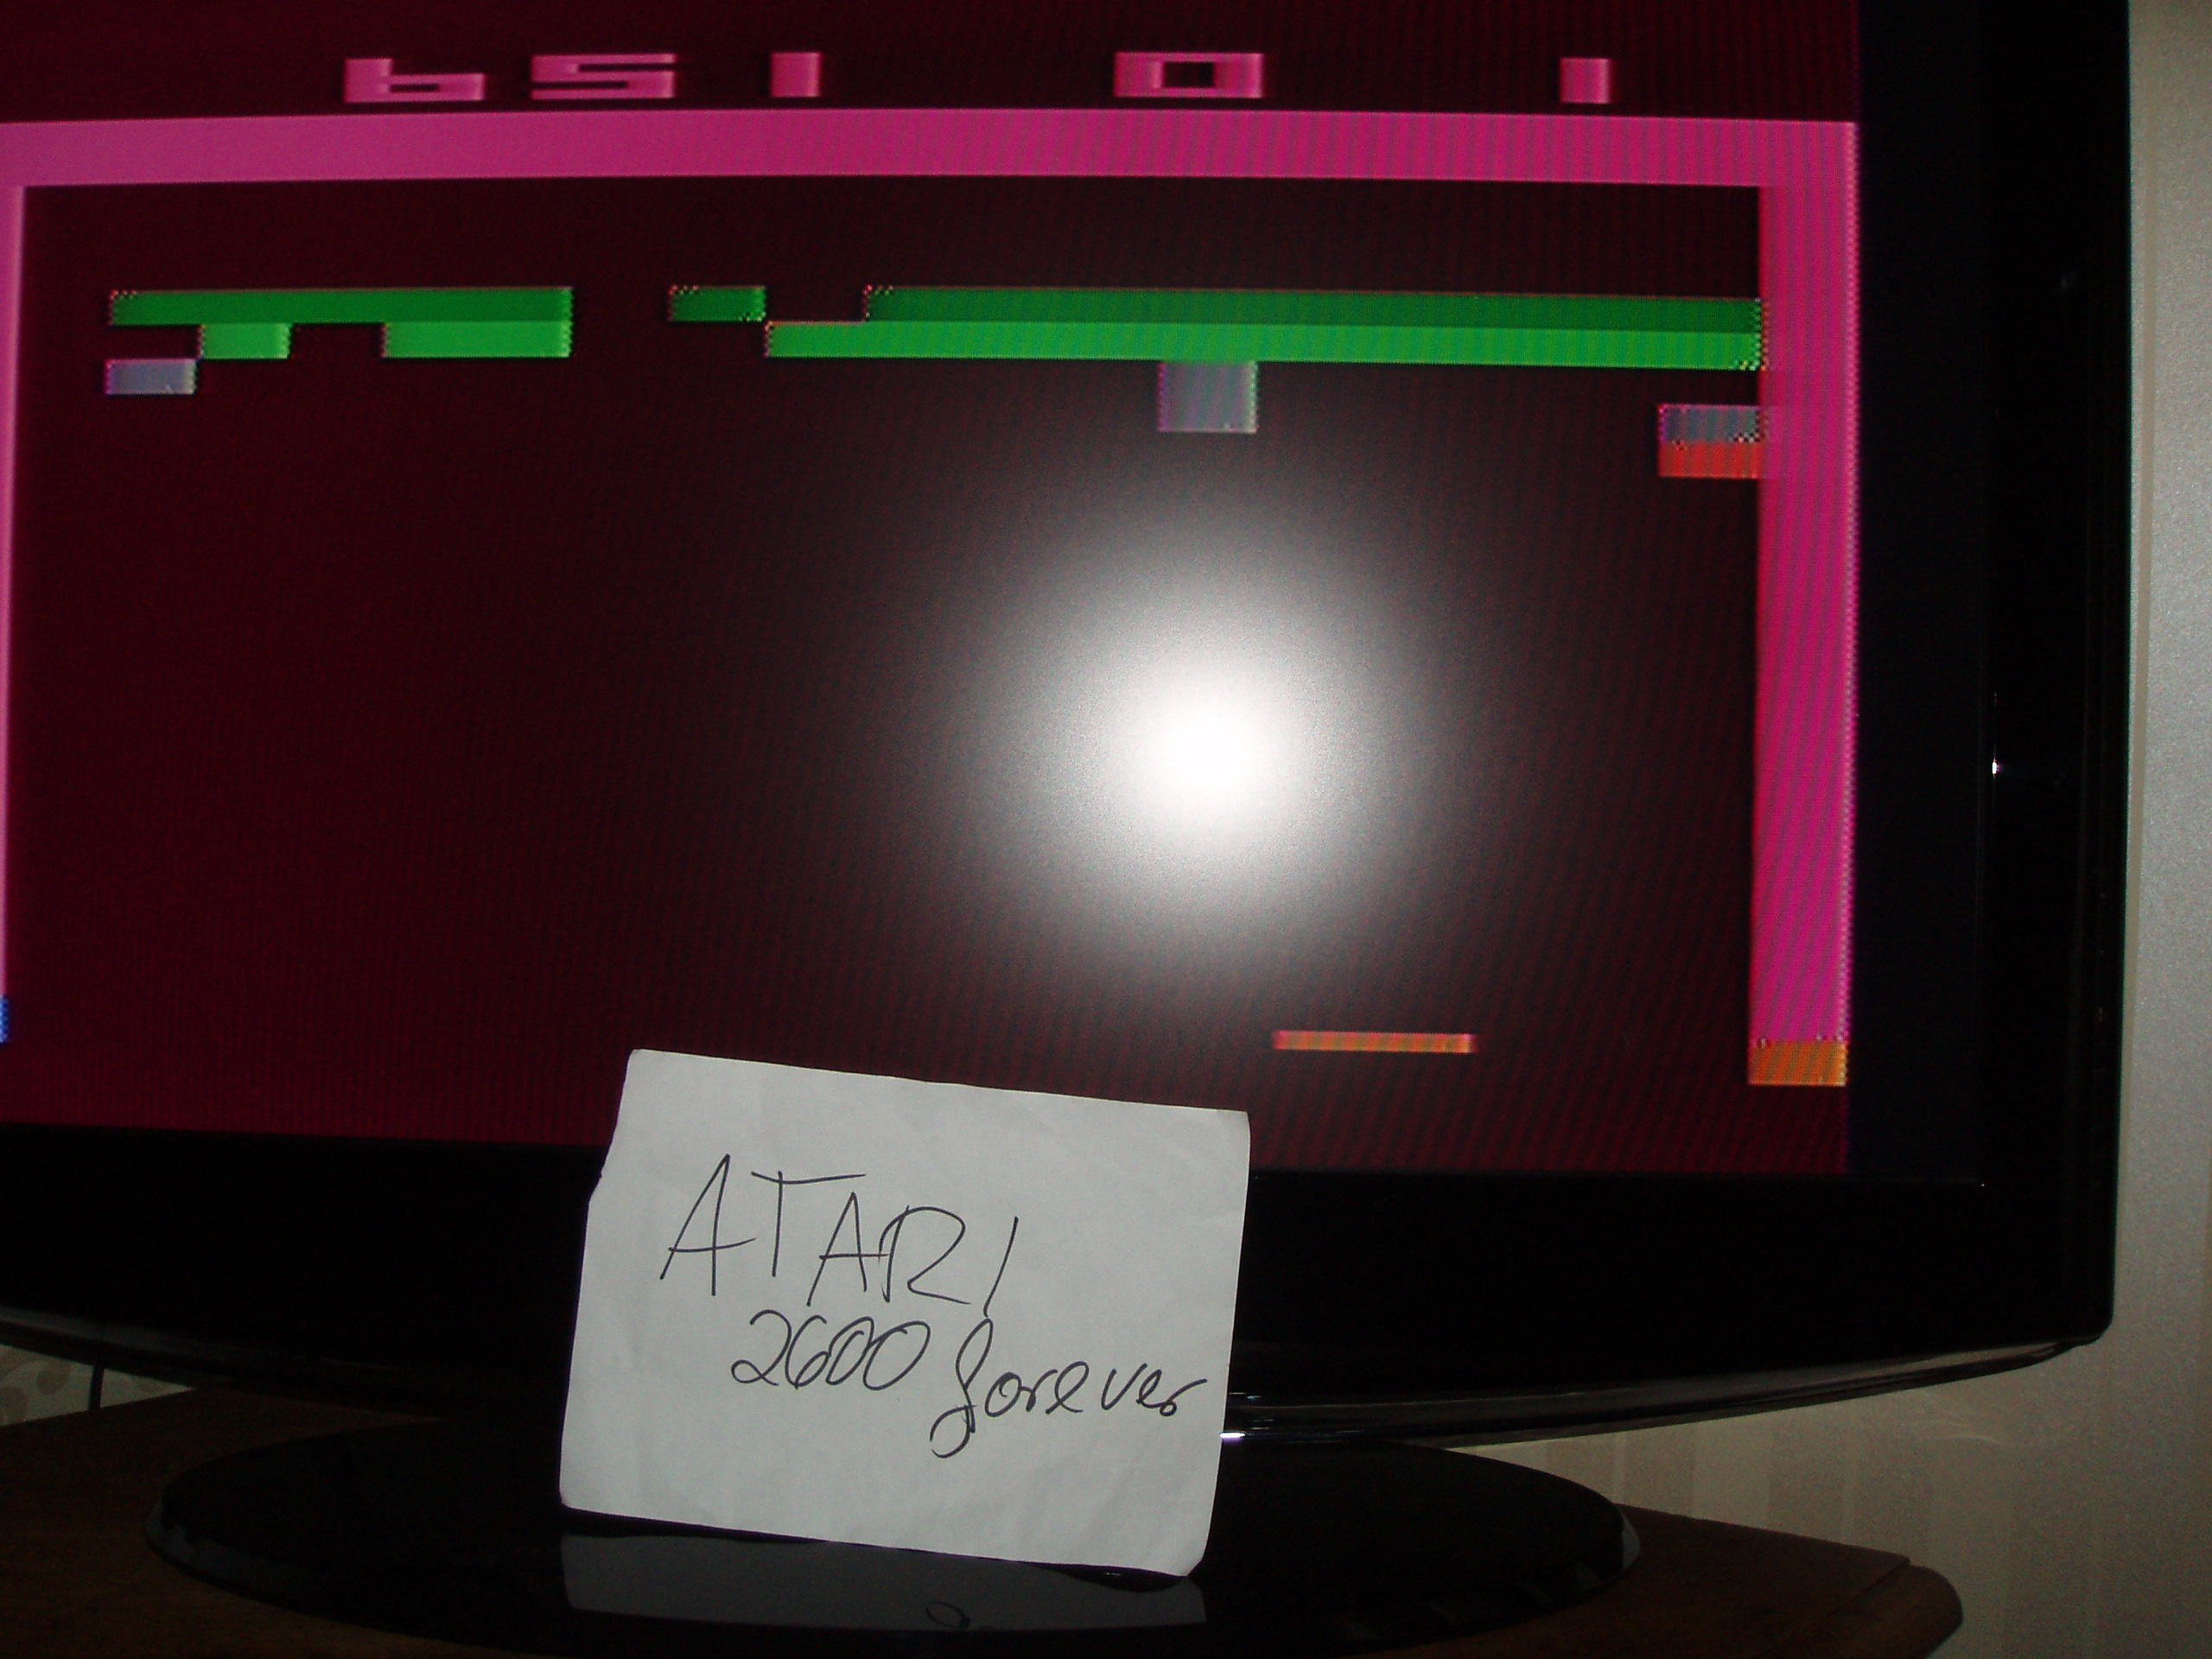 atari2600forever: Breakout: Game 1 (Atari 2600 Novice/B) 651 points on 2018-04-30 08:51:10